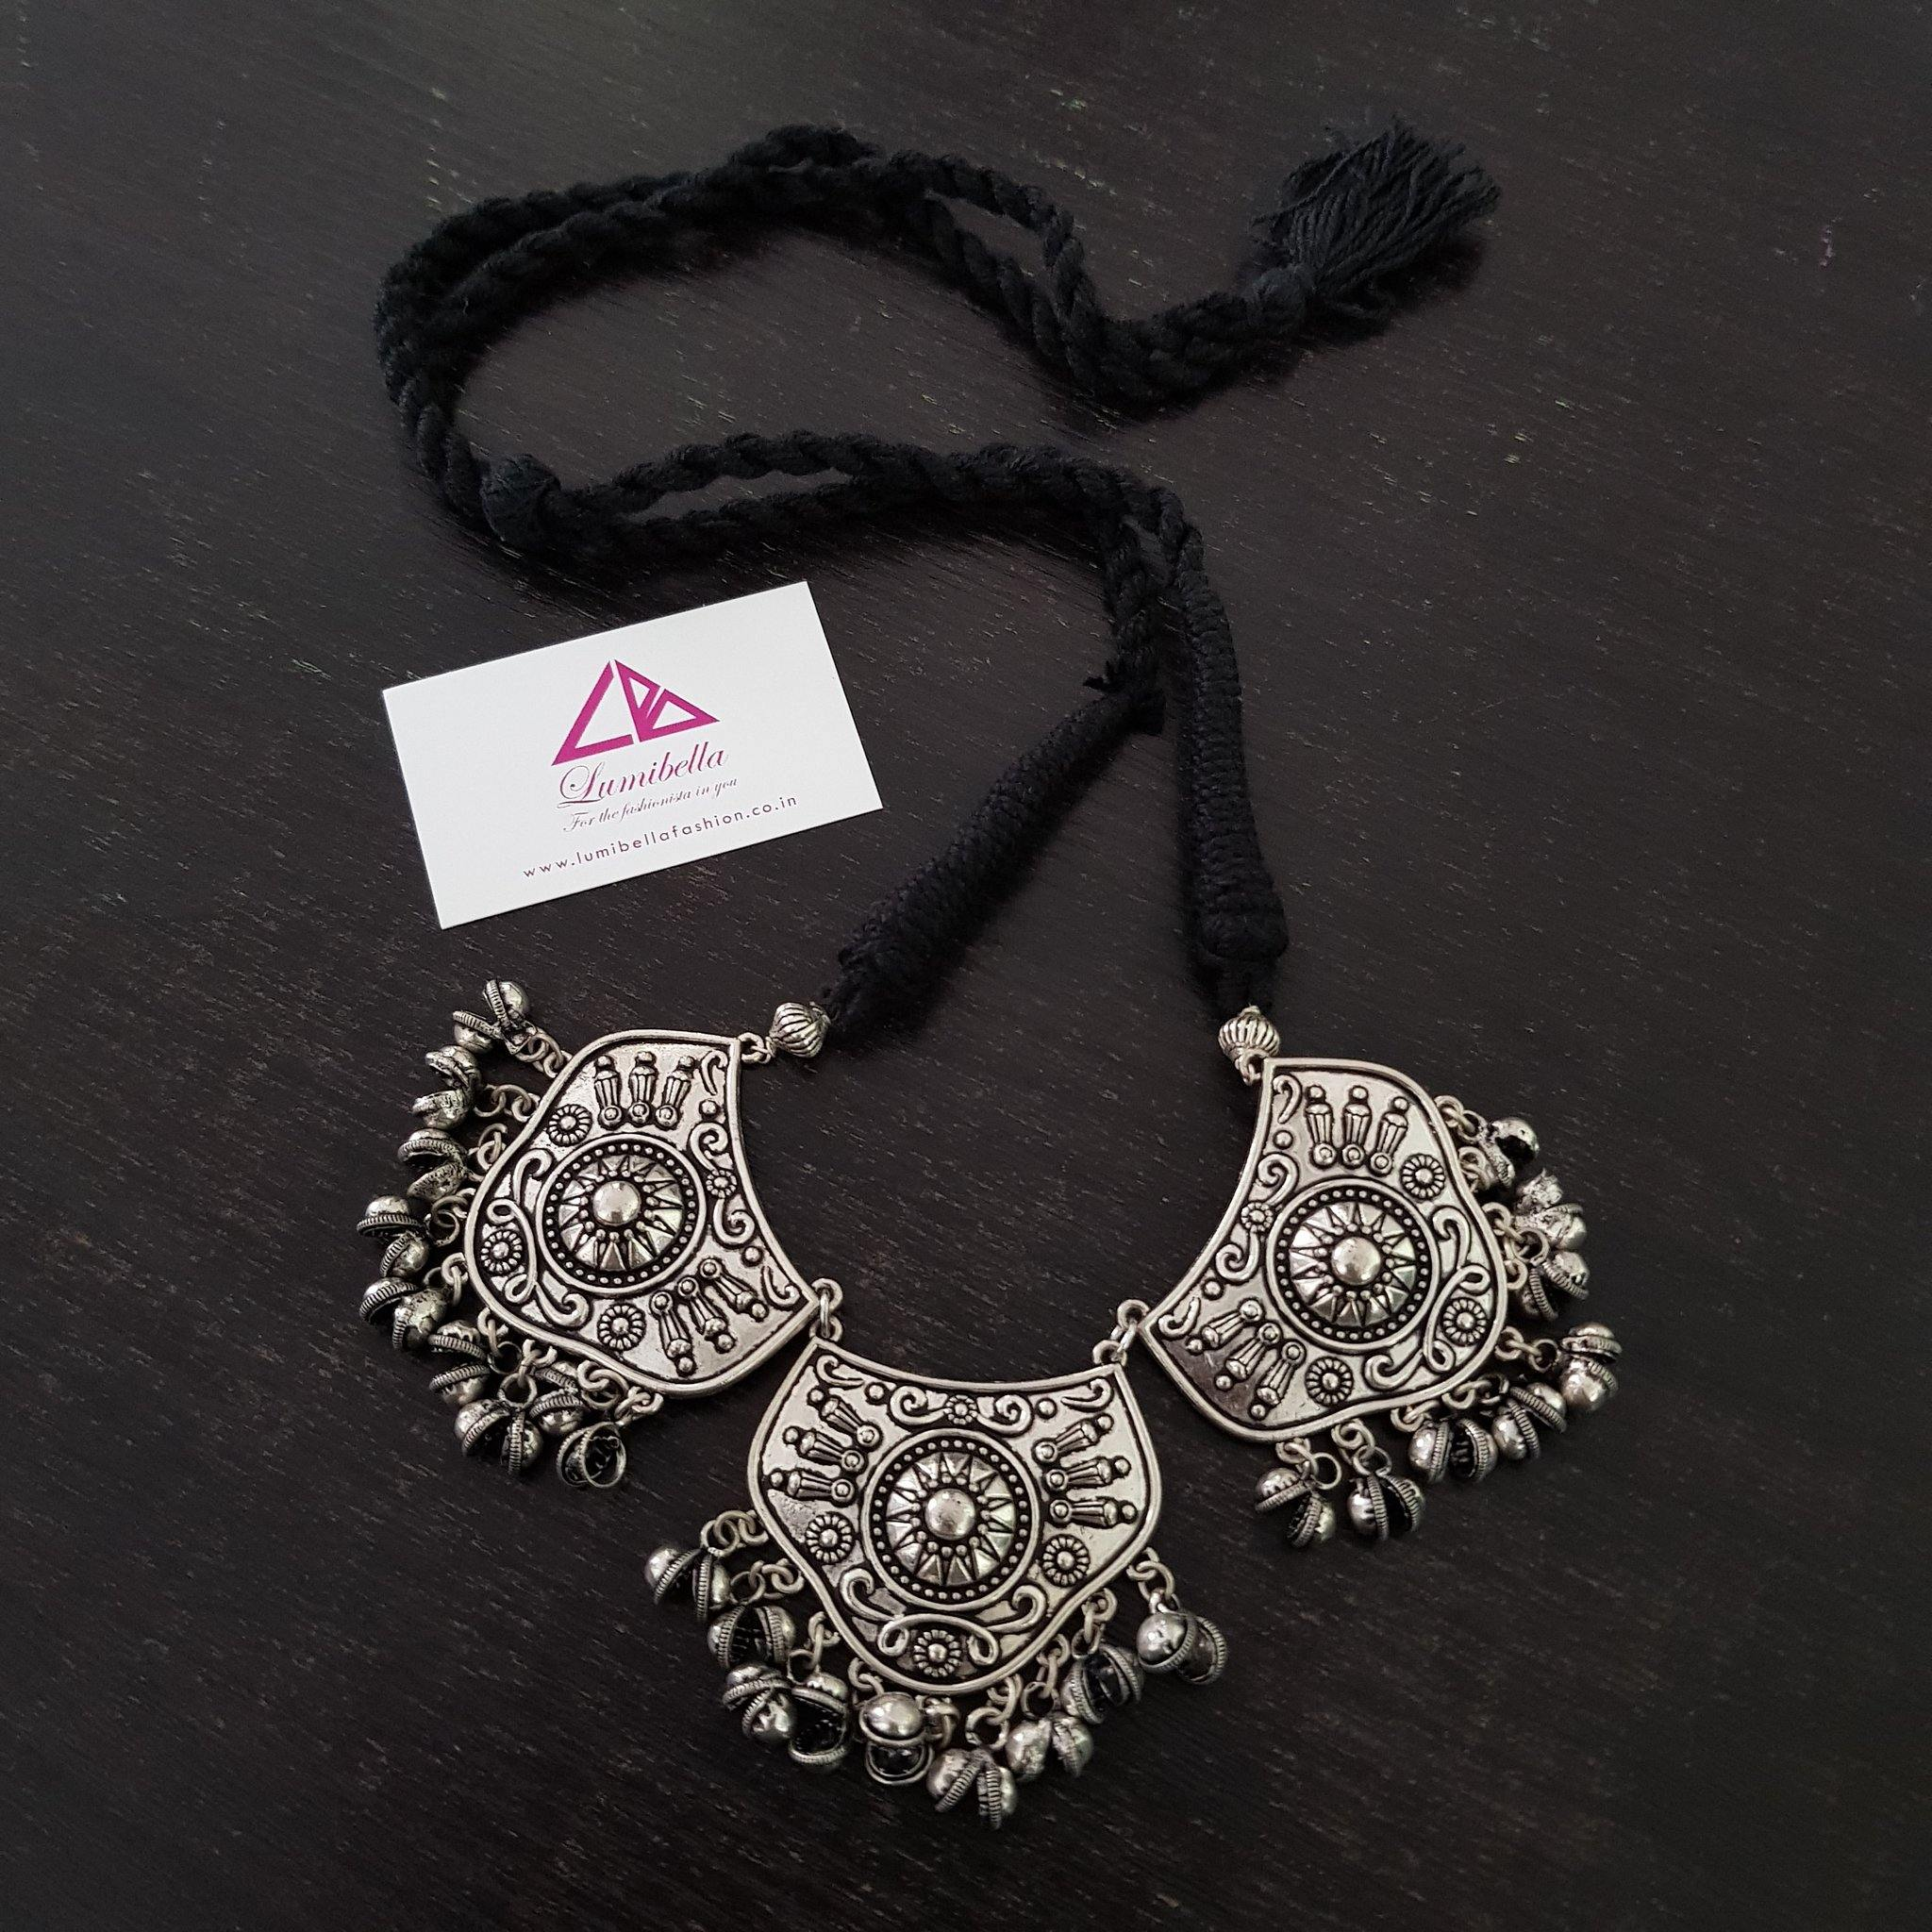 german silver neckset in chennai